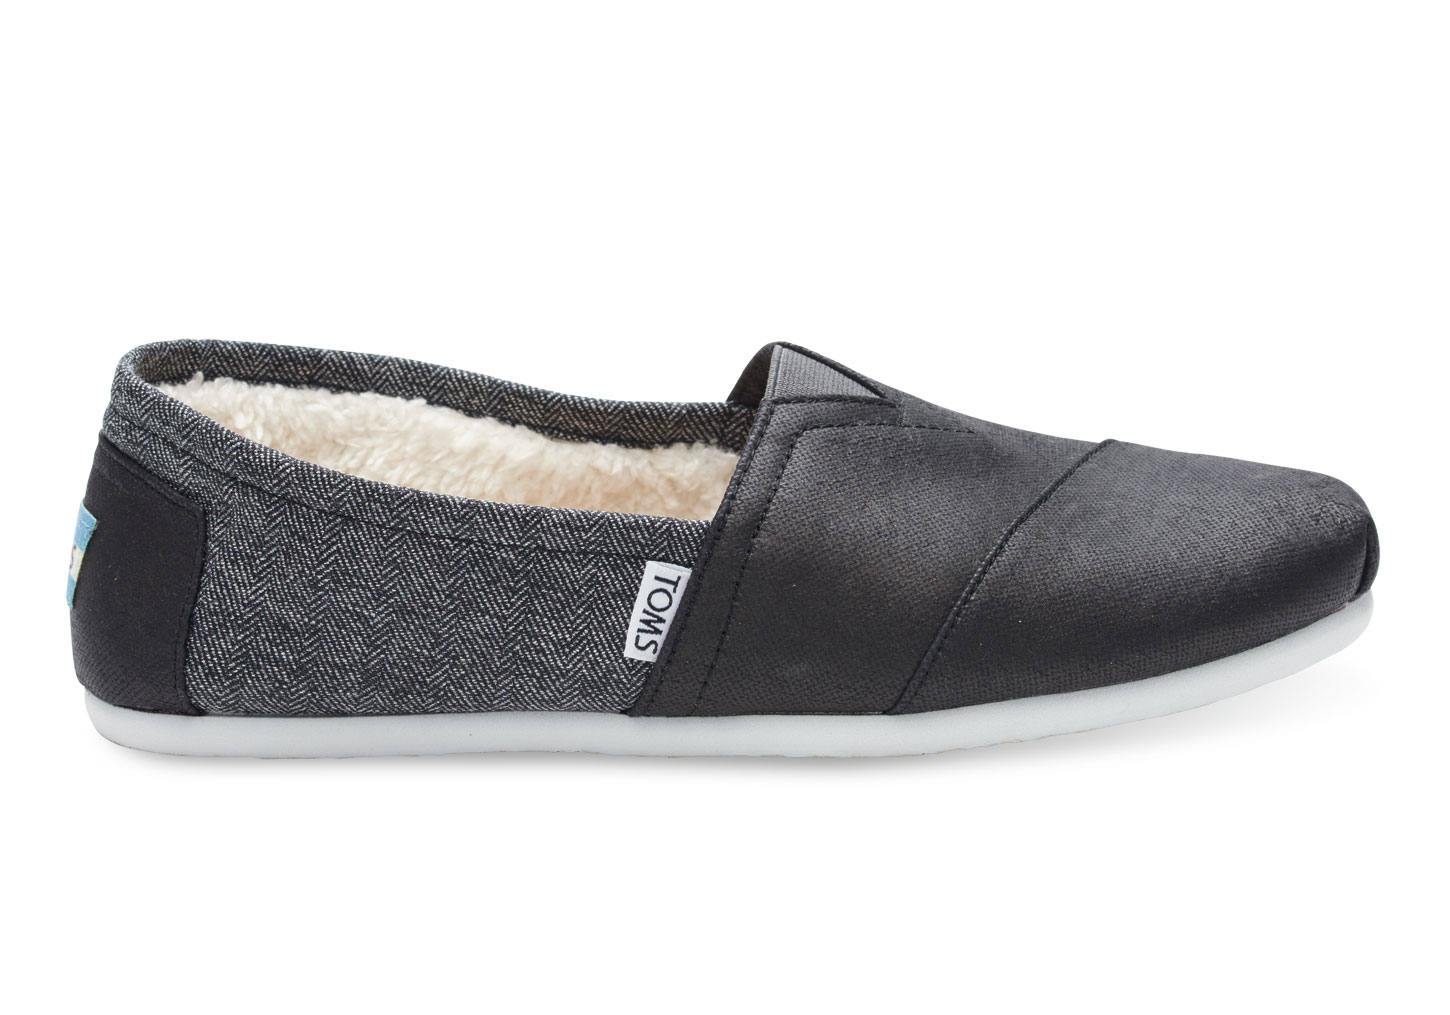 8935eb77cd6 TOMS Black Coated Canvas Shearling Men s Classics in Black for Men ...